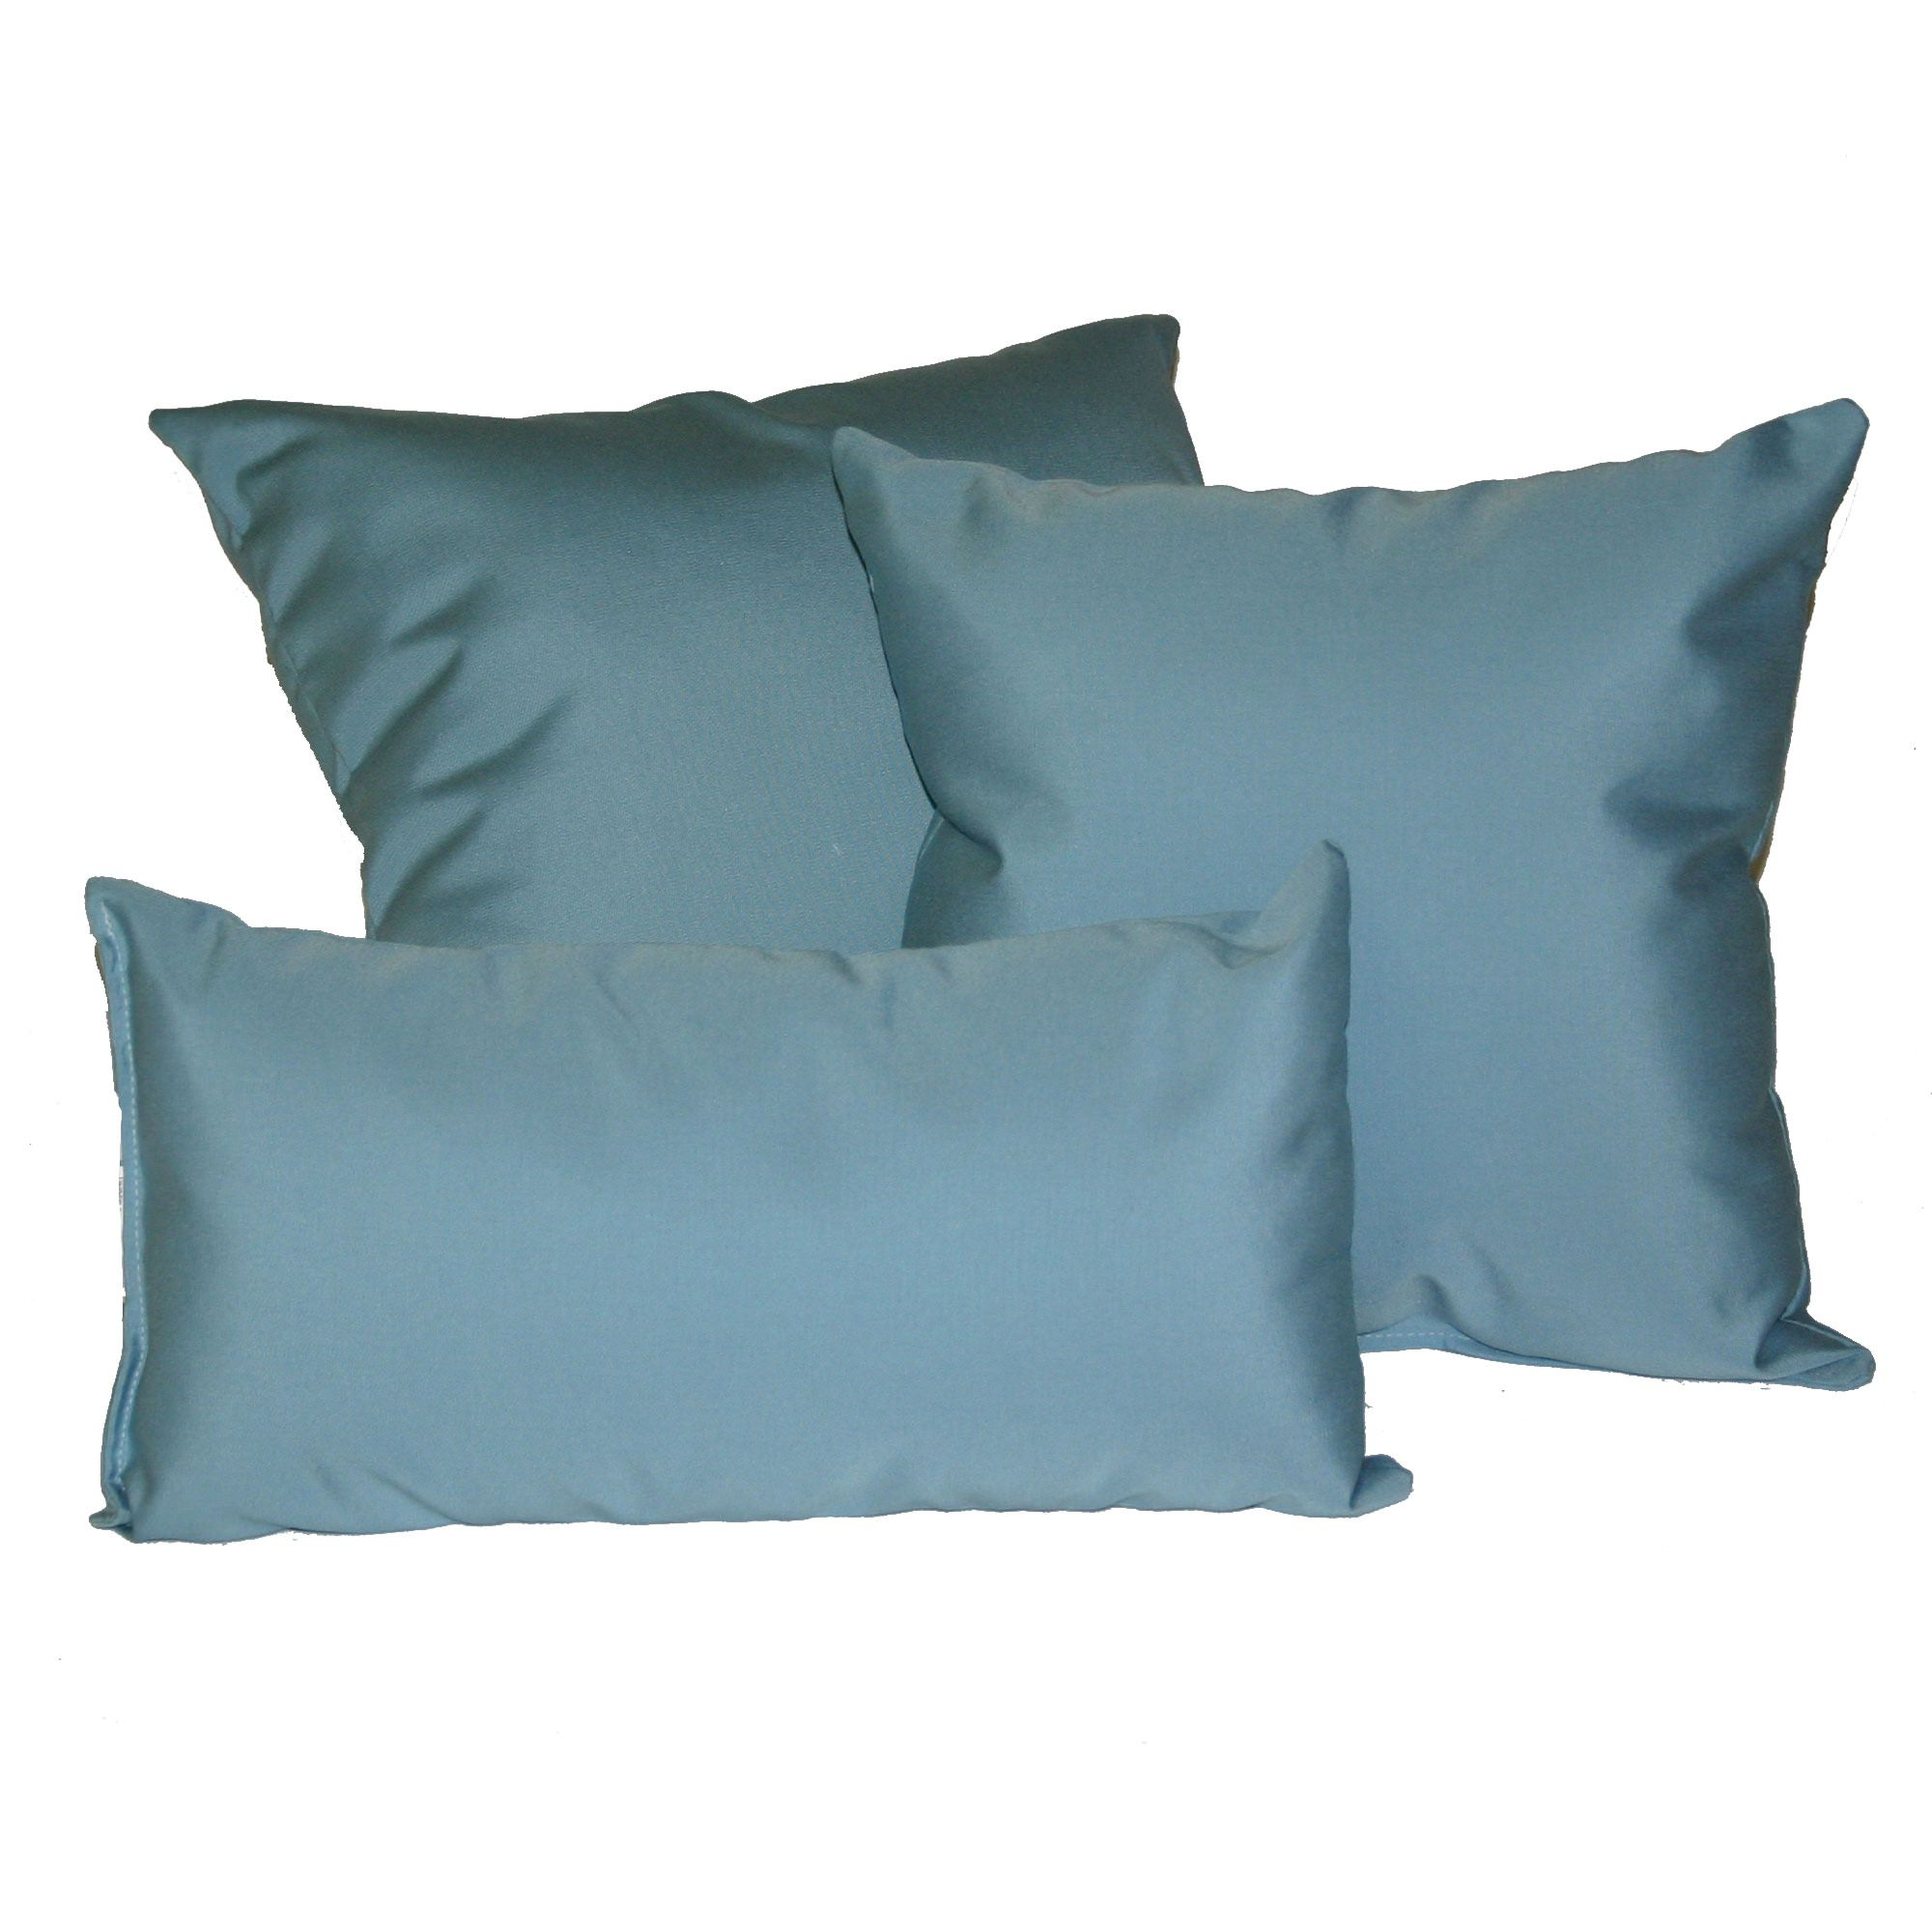 mineral blue sunbrella outdoor throw pillow - Sunbrella Pillows